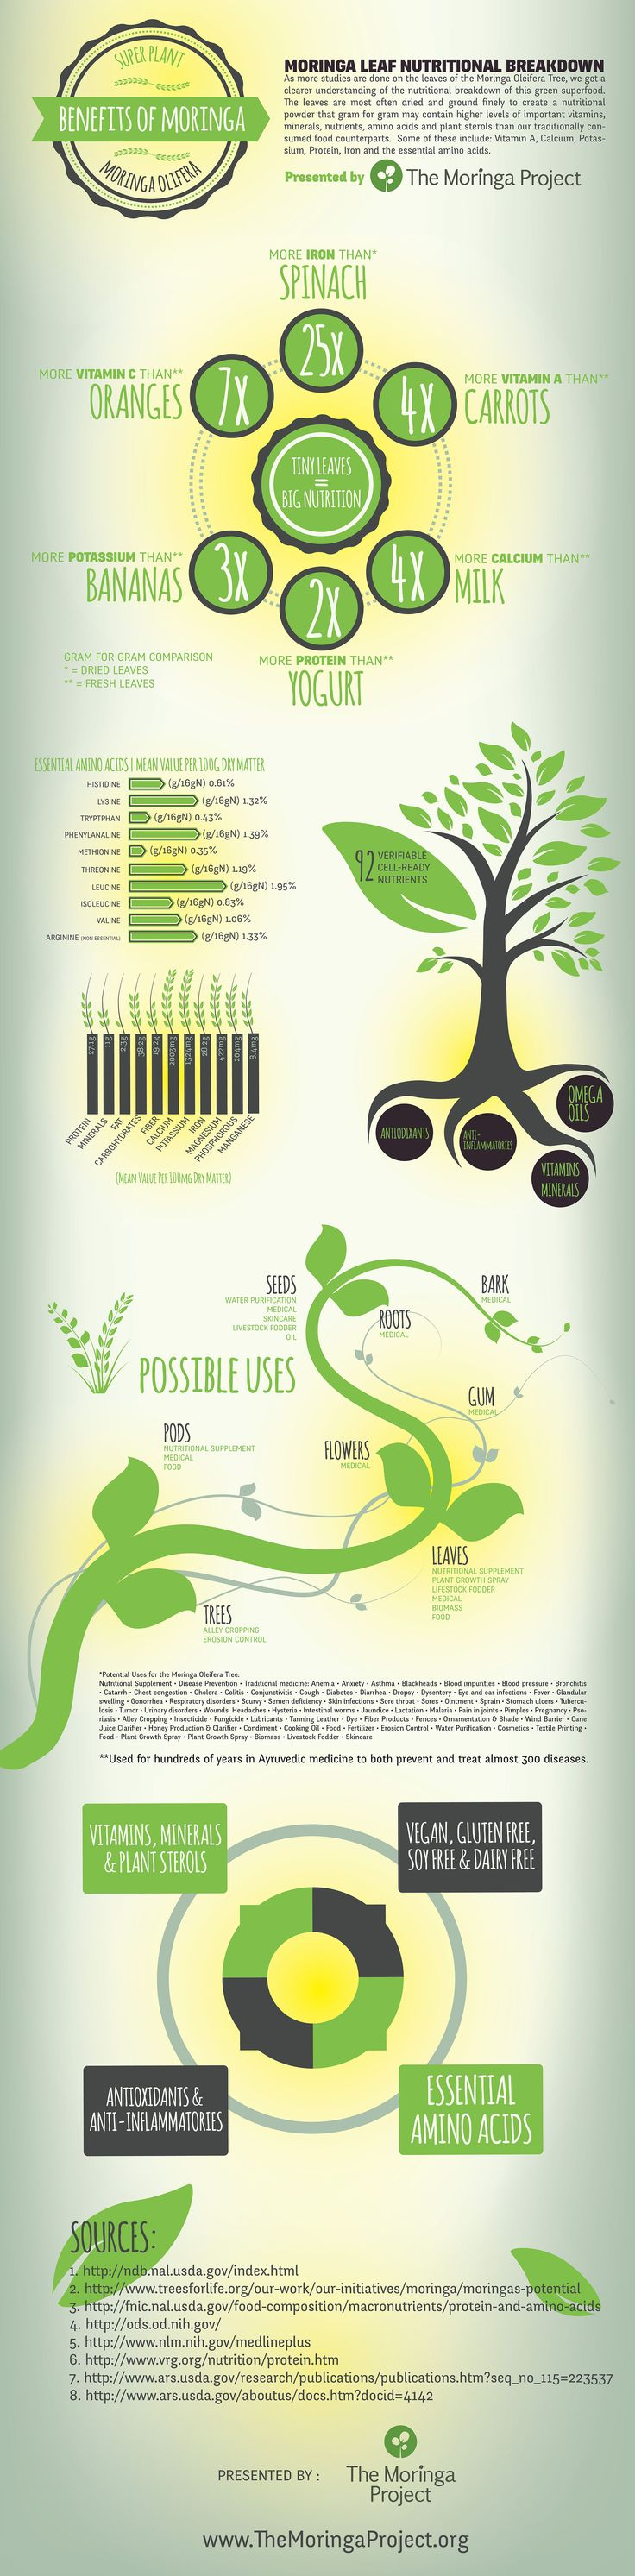 Moringa Oleifera has a great deal of reported health benefits, but as with any superfood, claims are often exaggerated. The Moringa Project has created this infographic to help you sort through and separate the fact from the fiction. Enjoy!